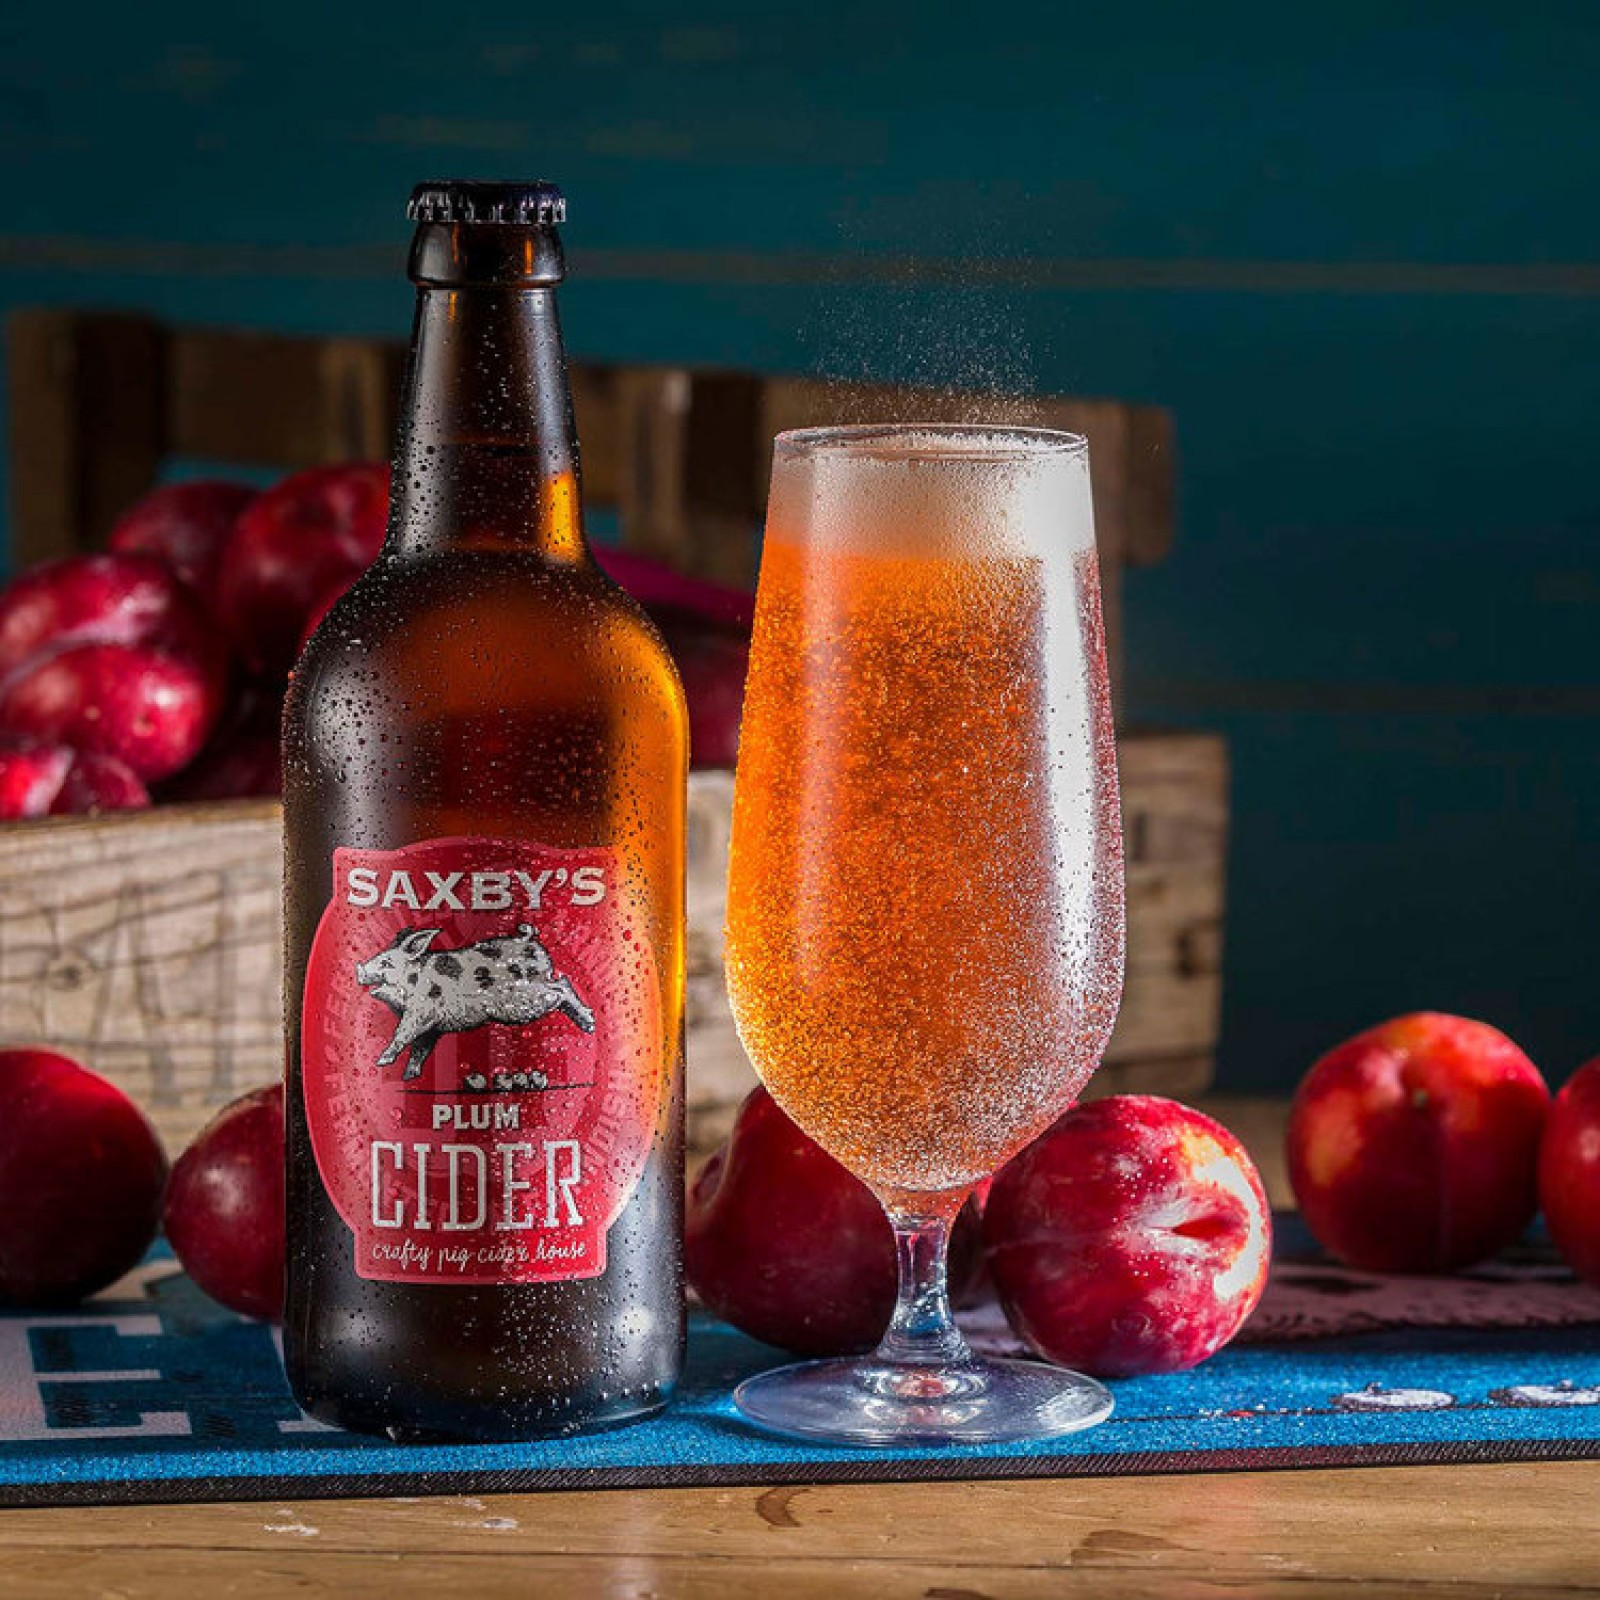 Saxby's Plum Cider 3.8% 500ml & 3litre Bag In The Box